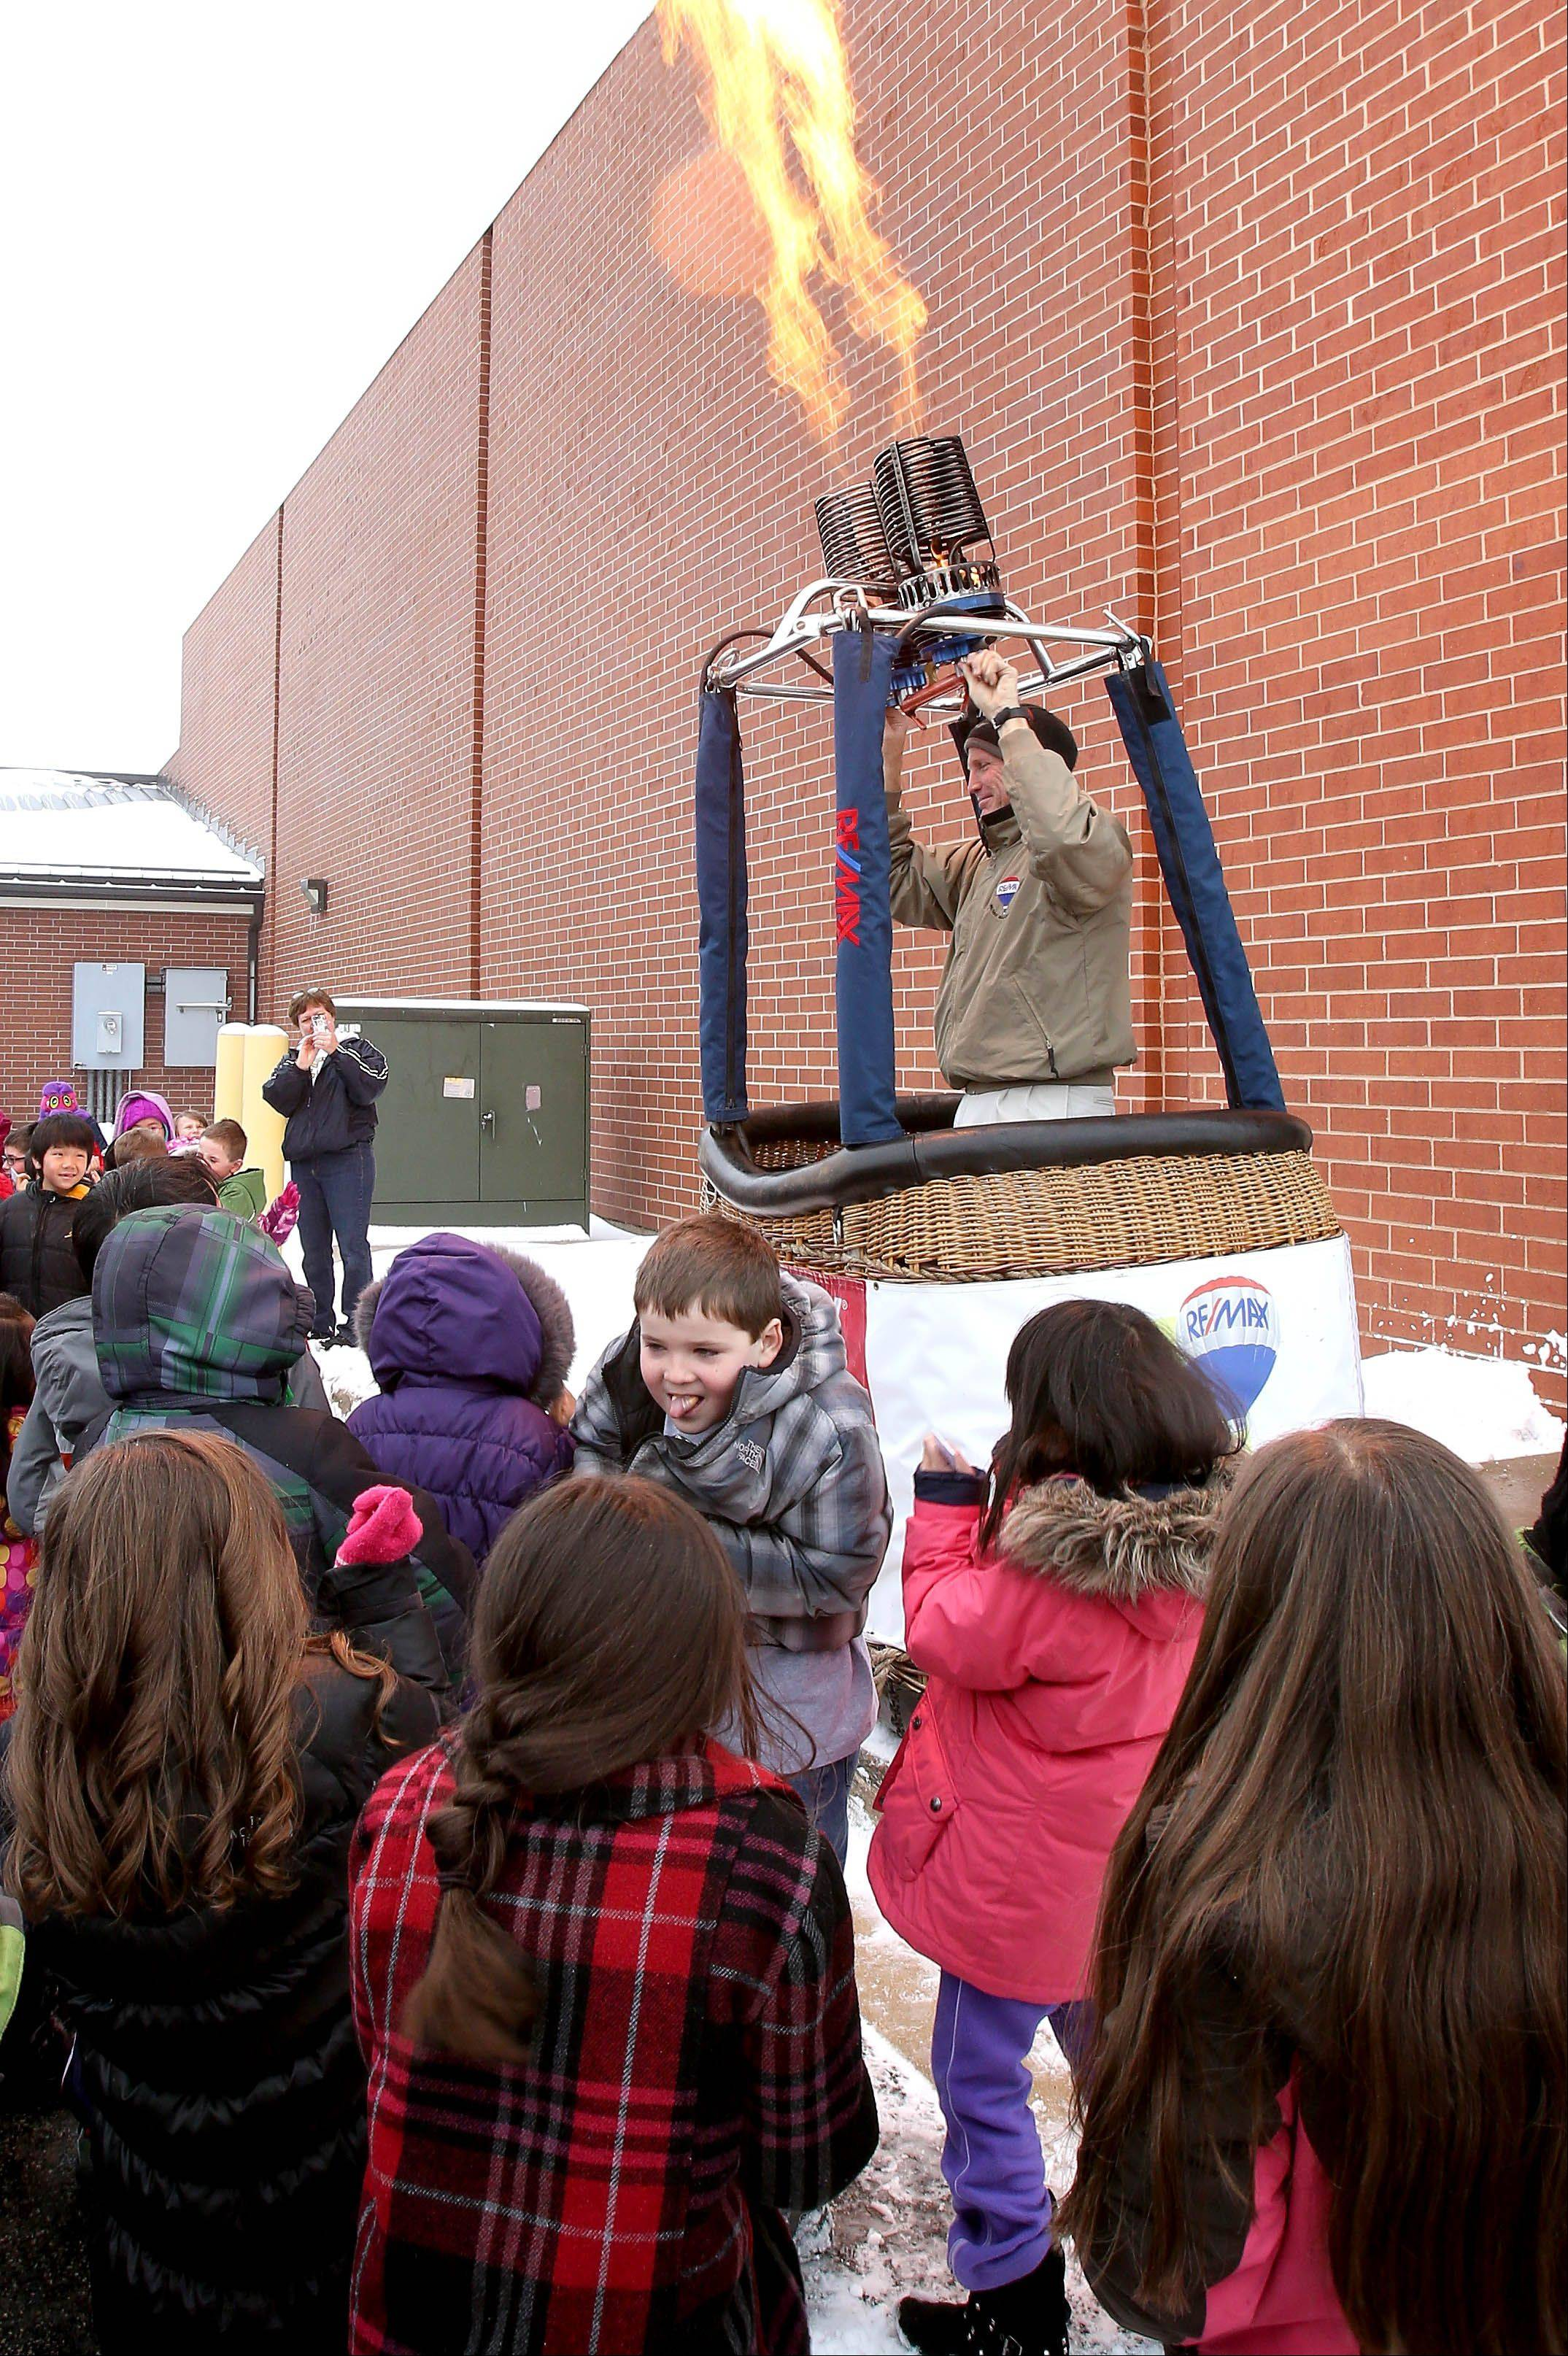 Bill Baker, a hot-air balloon pilot with RE/MAX, sets off the burners for kids at Welch Elementary School in Naperville.